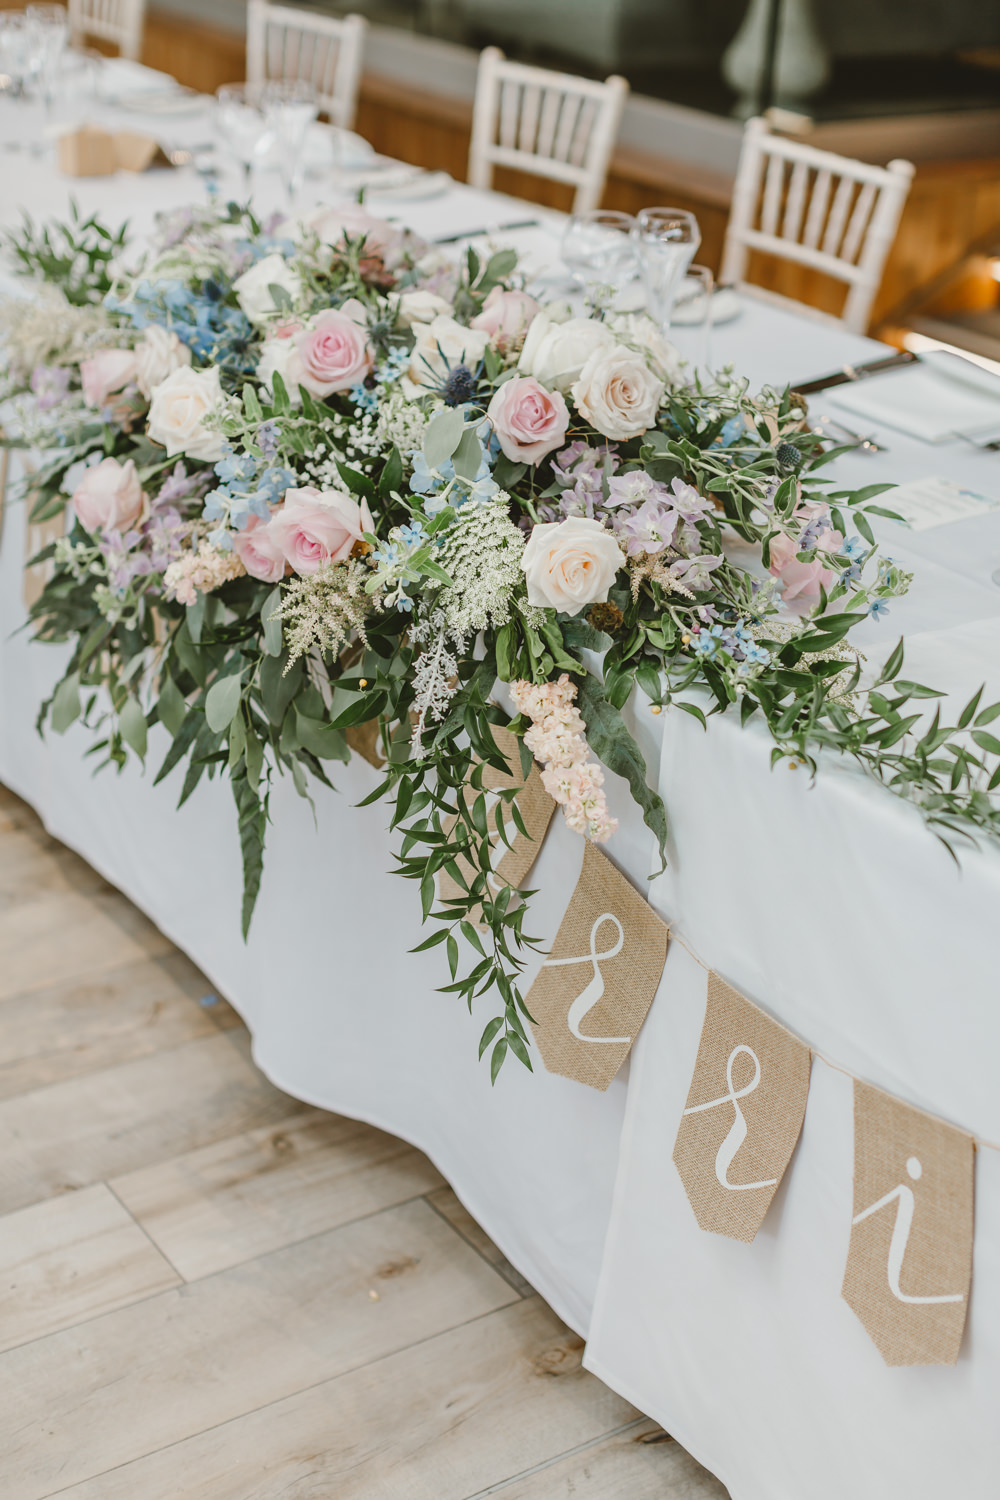 Top Table Flowers Arrangement Pink Blue Rose Greenery Foliage GG's Yard Wedding Amy Lou Photography